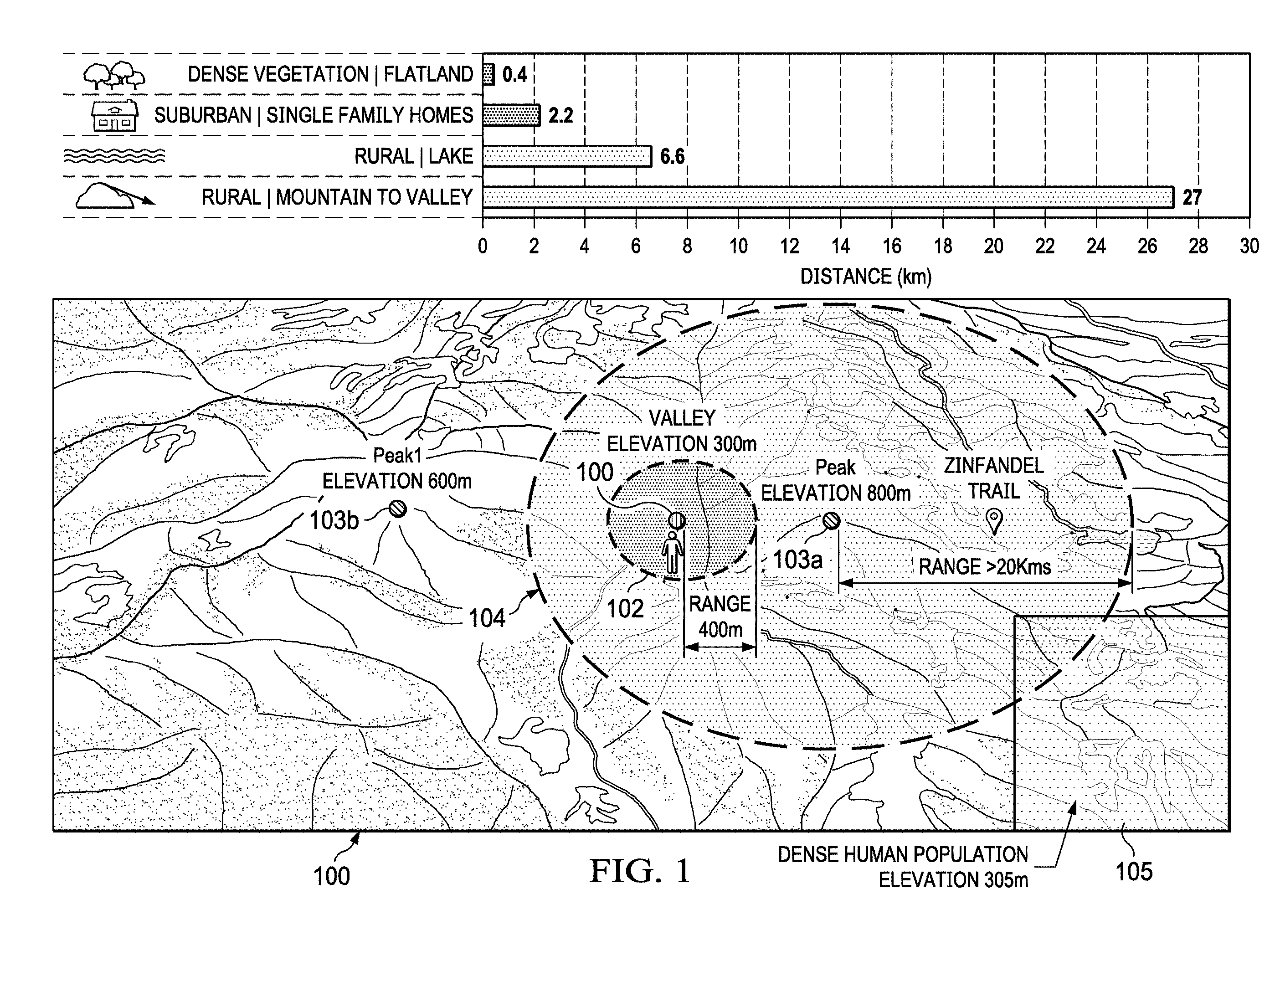 Detail from the patent showing one way in which the iPhone can calculate a likely best direction for a stranded user to go for help